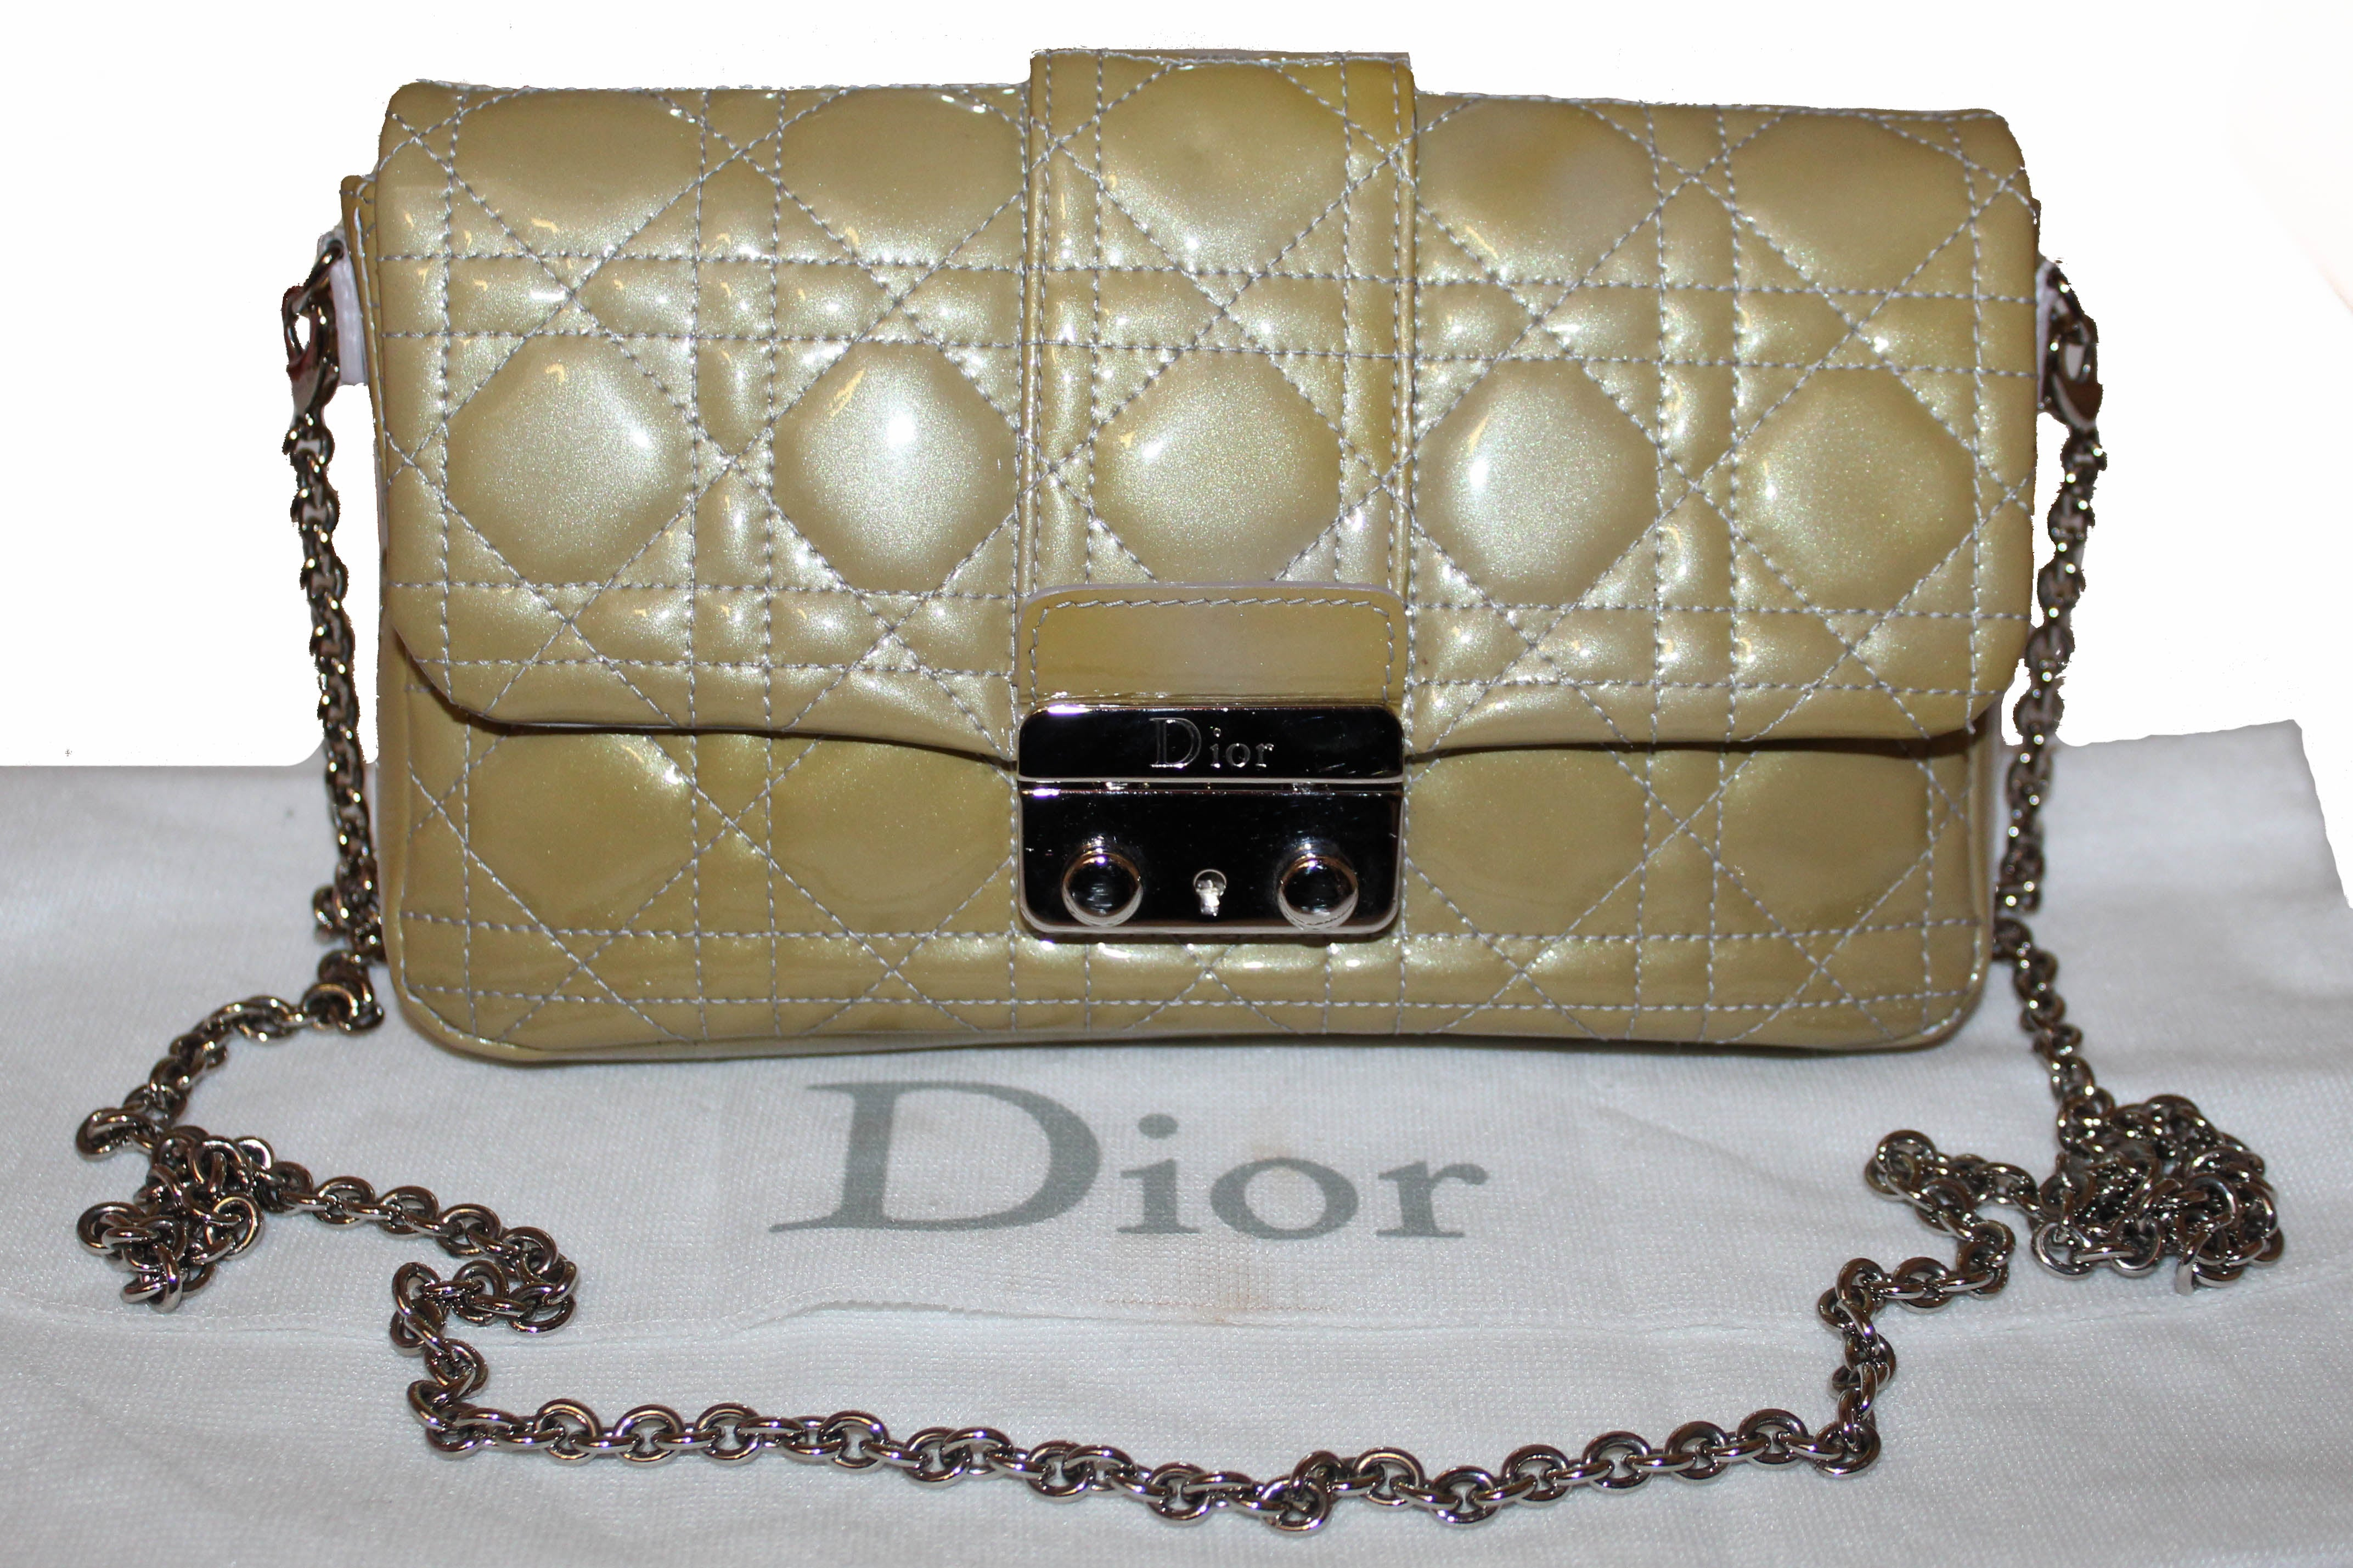 Authentic Christian Dior Green Cannage Quilted Patent Leather Miss Dior Promenade Crossbody Clutch Bag